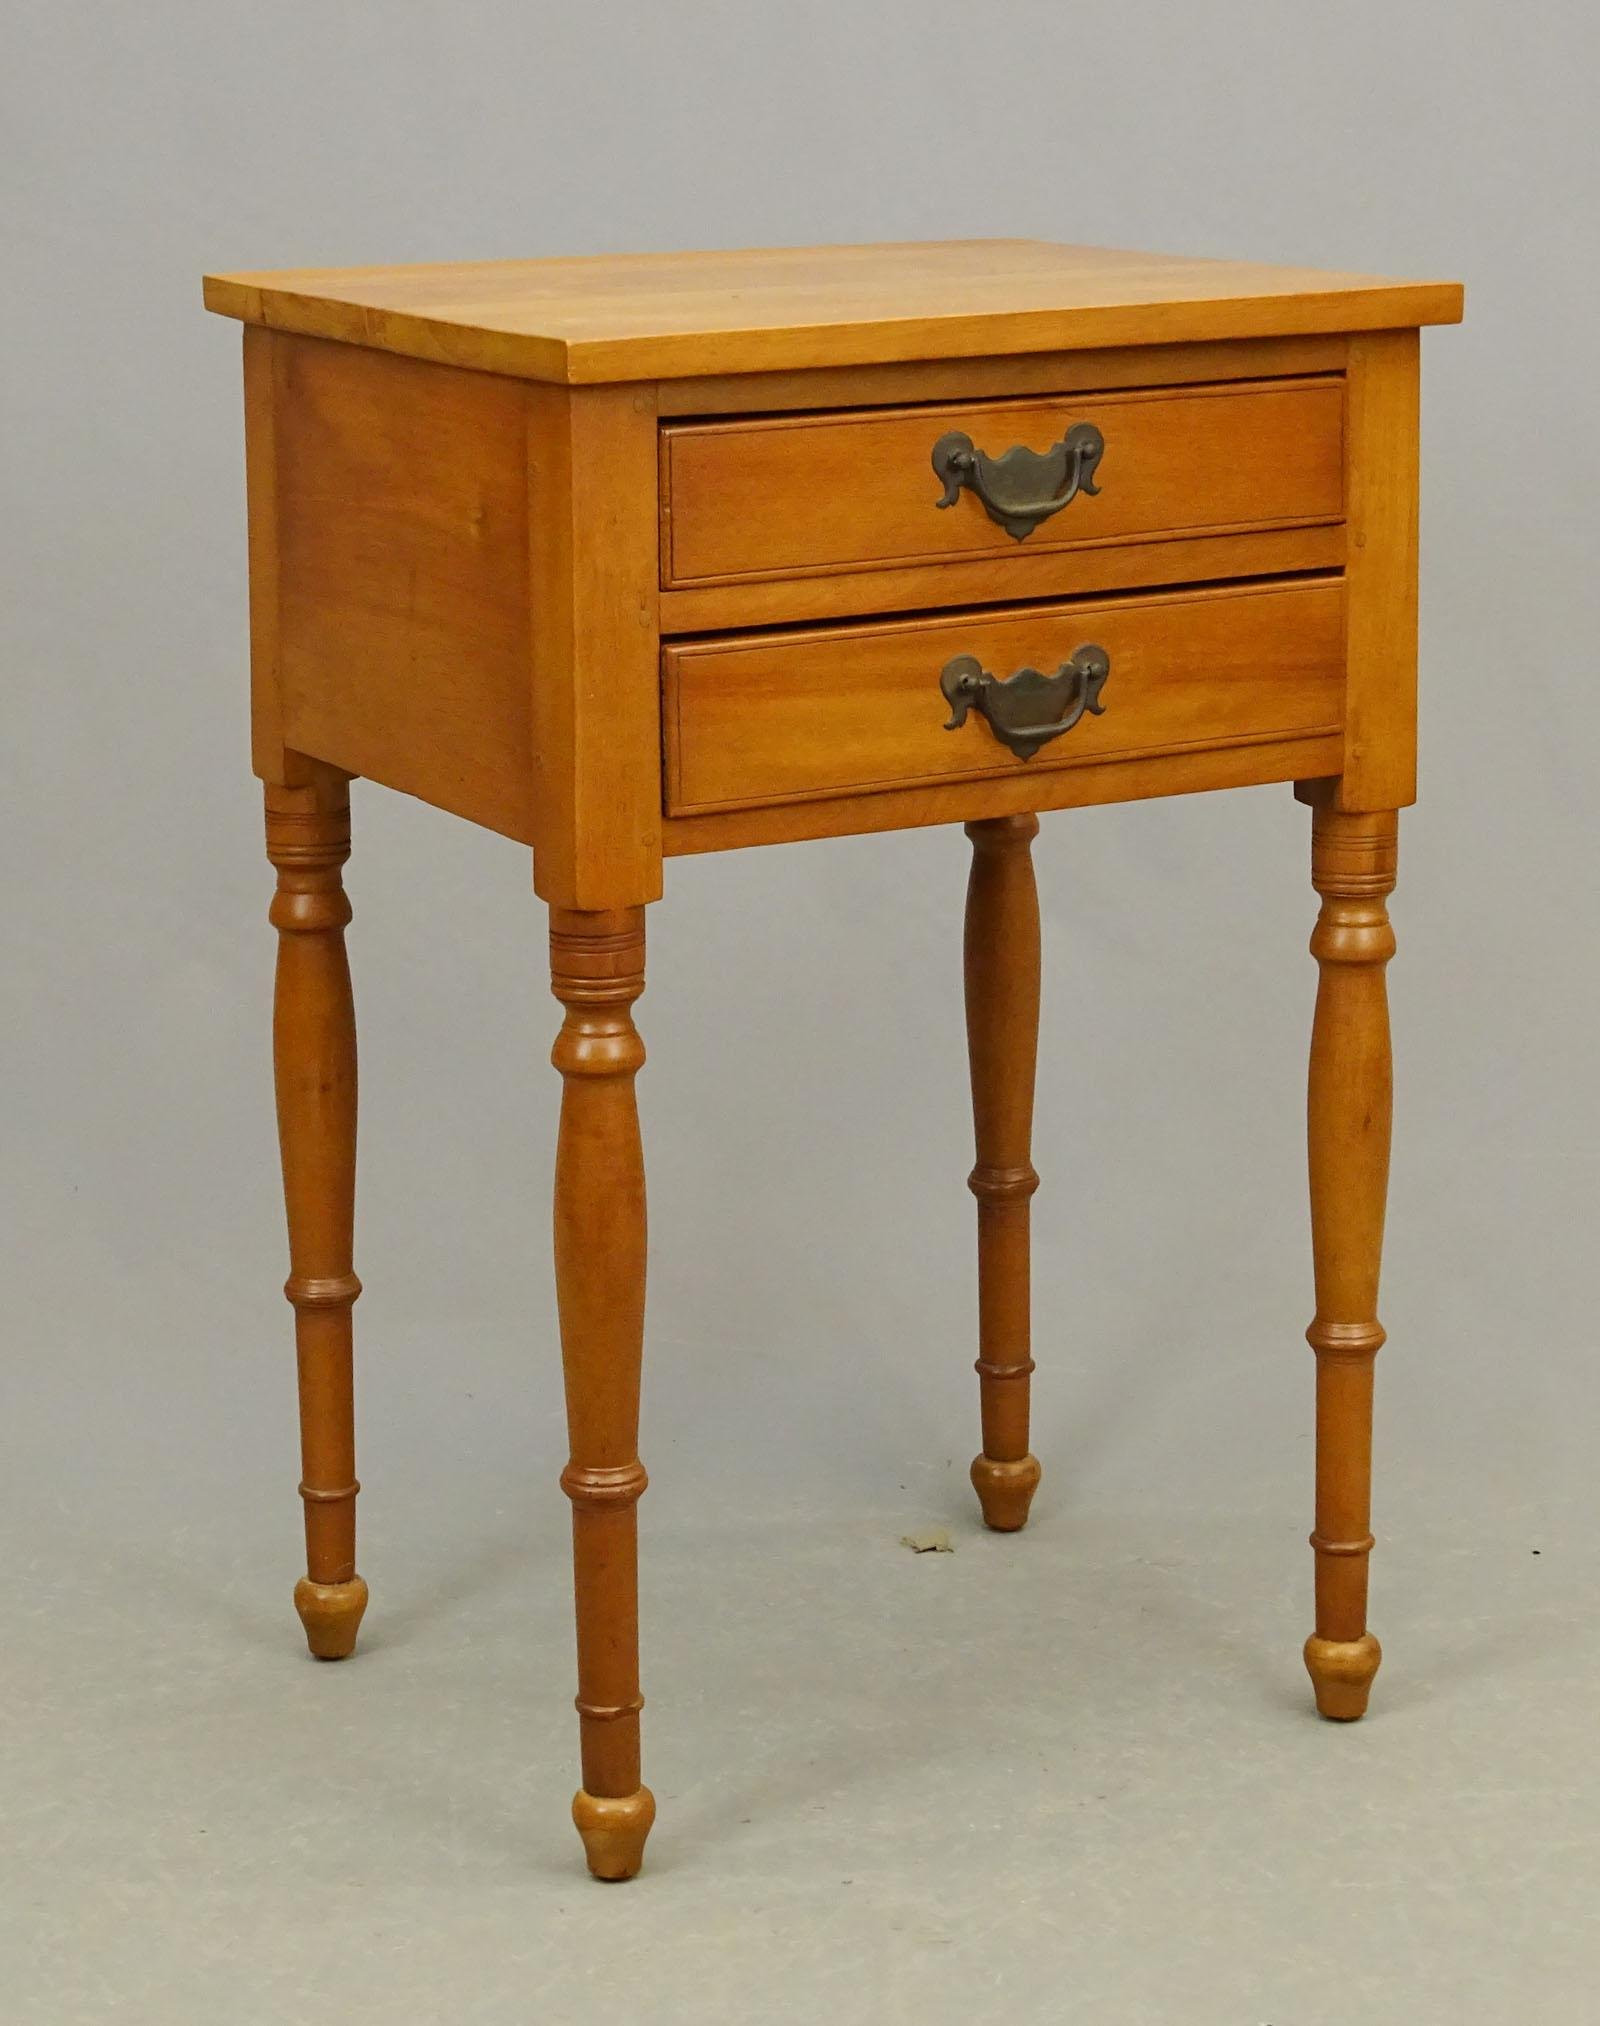 19tth c. Two Drawer Stand